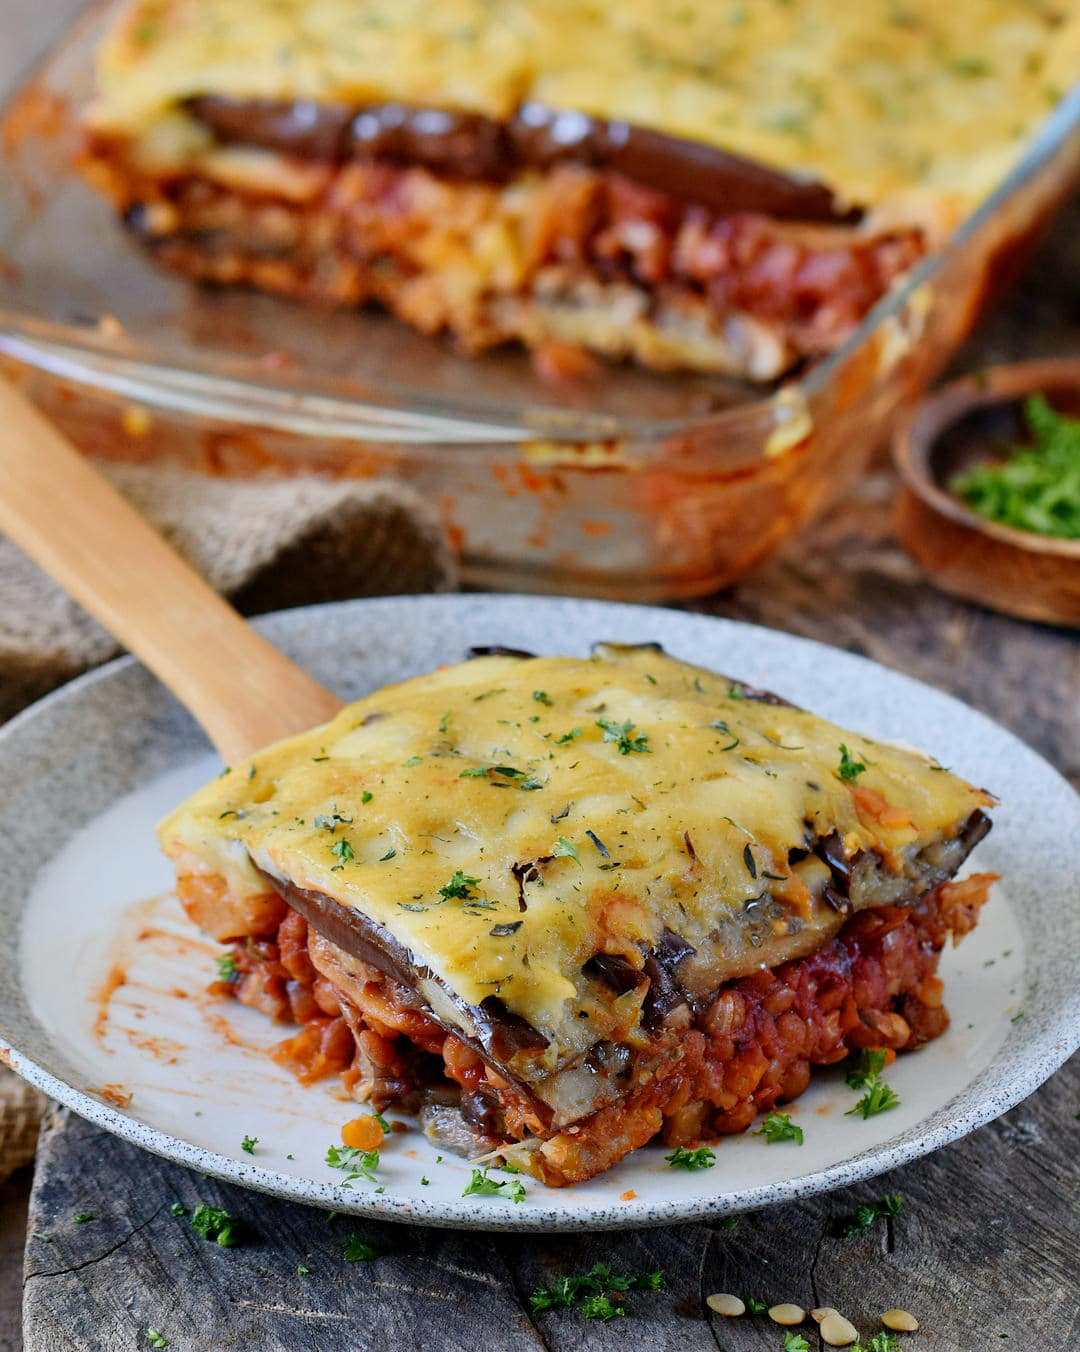 vegan moussaka on a plate with a wooden spatula